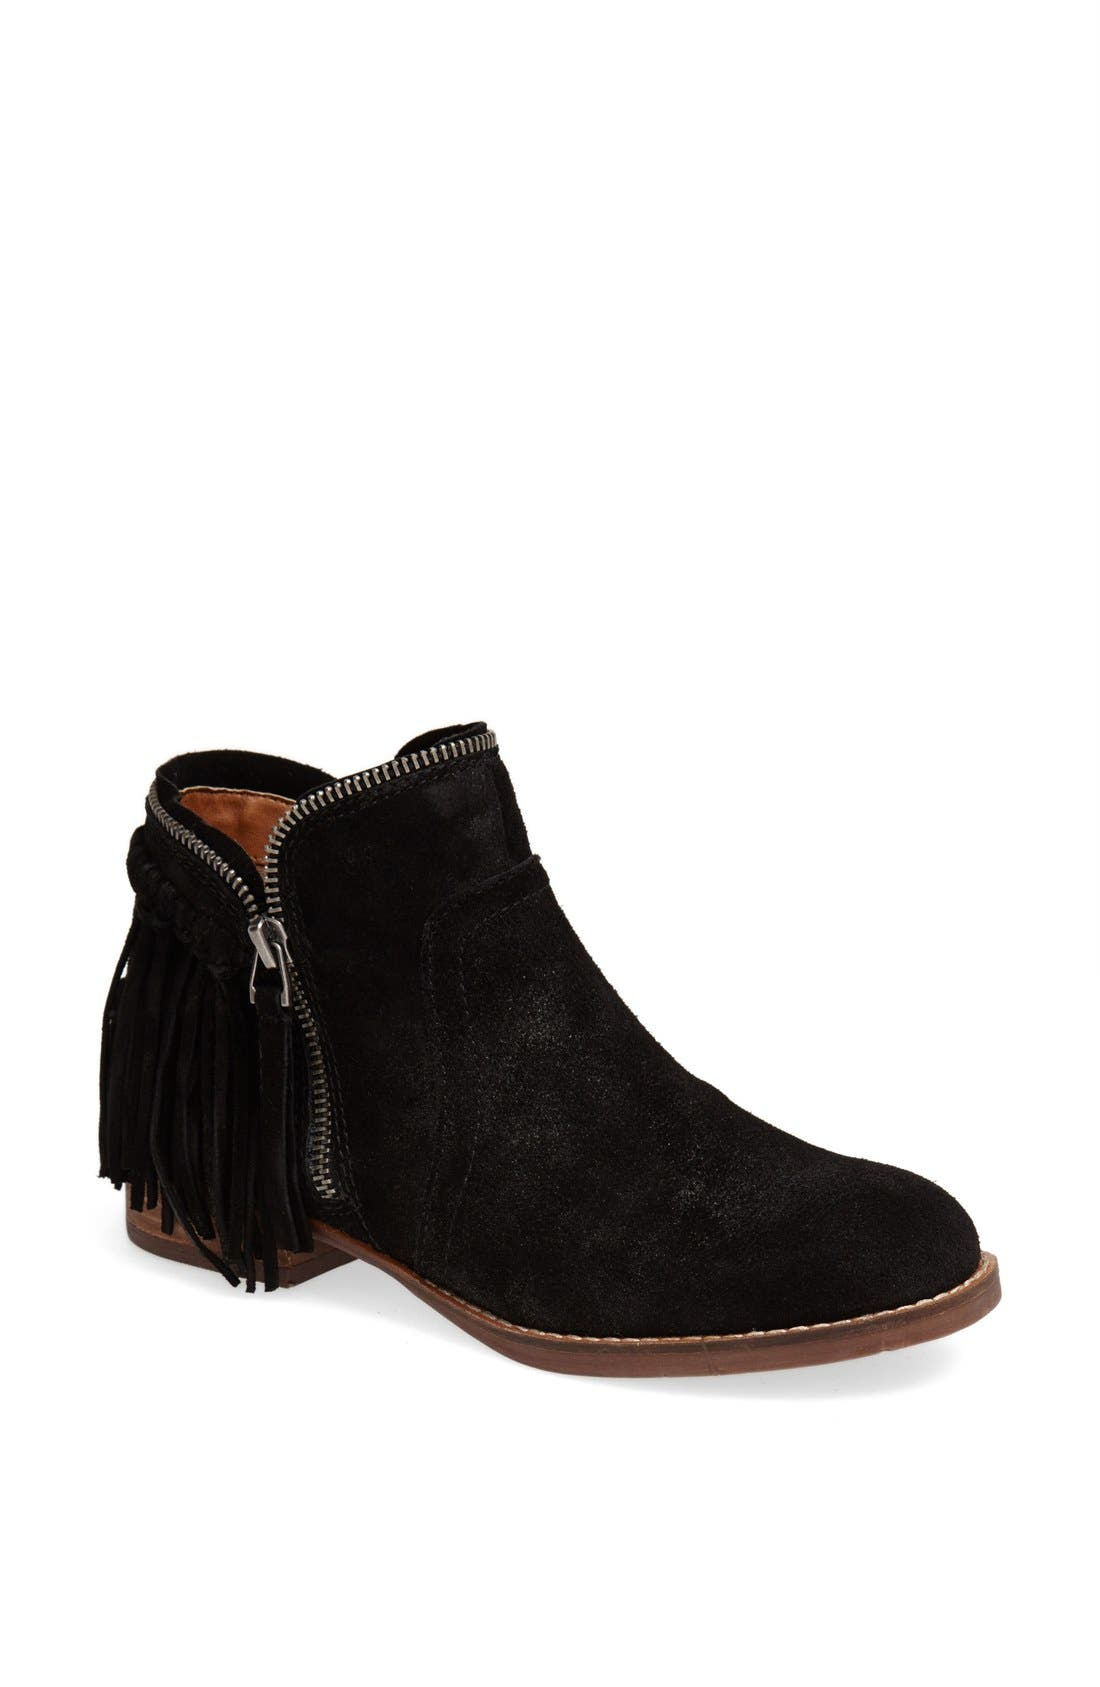 DV Footwear 'Fisher' Bootie,                             Main thumbnail 1, color,                             004